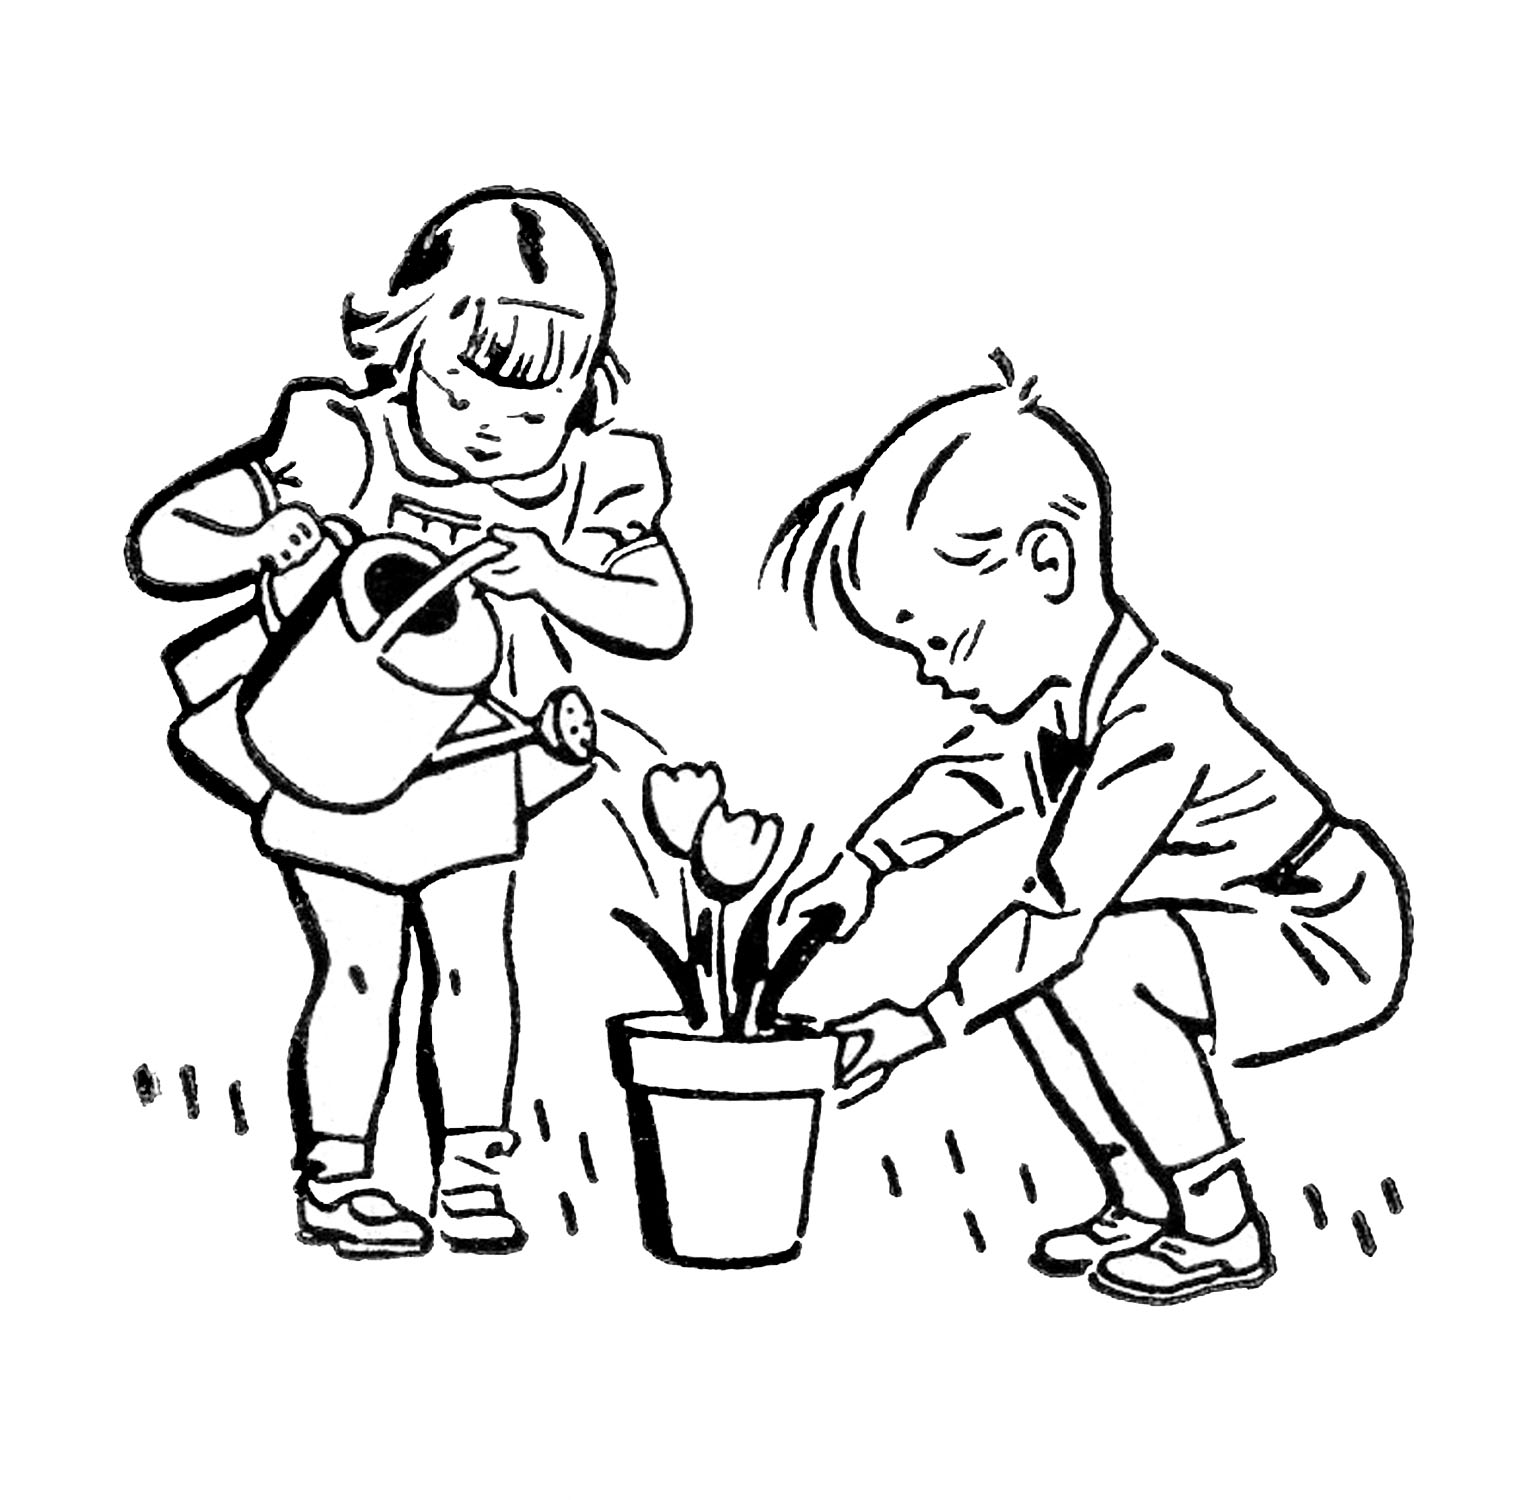 Child Drawing Clipart Black And White & Free Clip Art Images #10511.